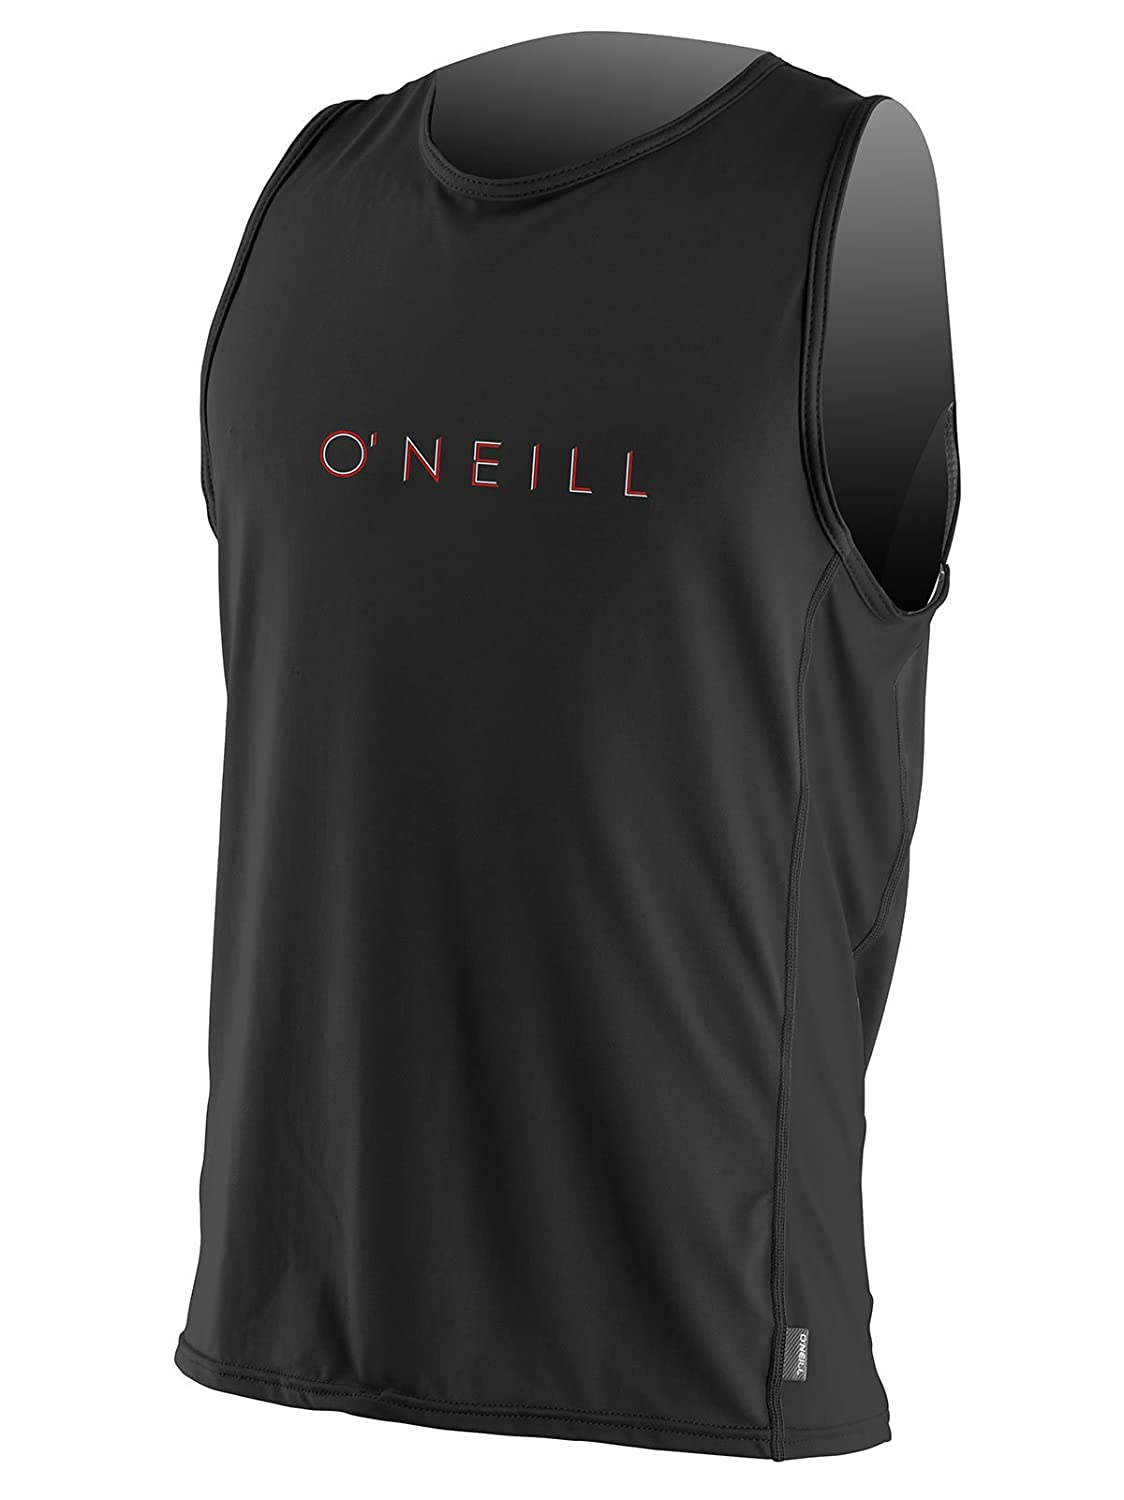 O ' Neillメンズ24 /7 Tech Sleeveless Crew 3 X l-tallブラック/ブラック(4248 C)   B07D5G712H